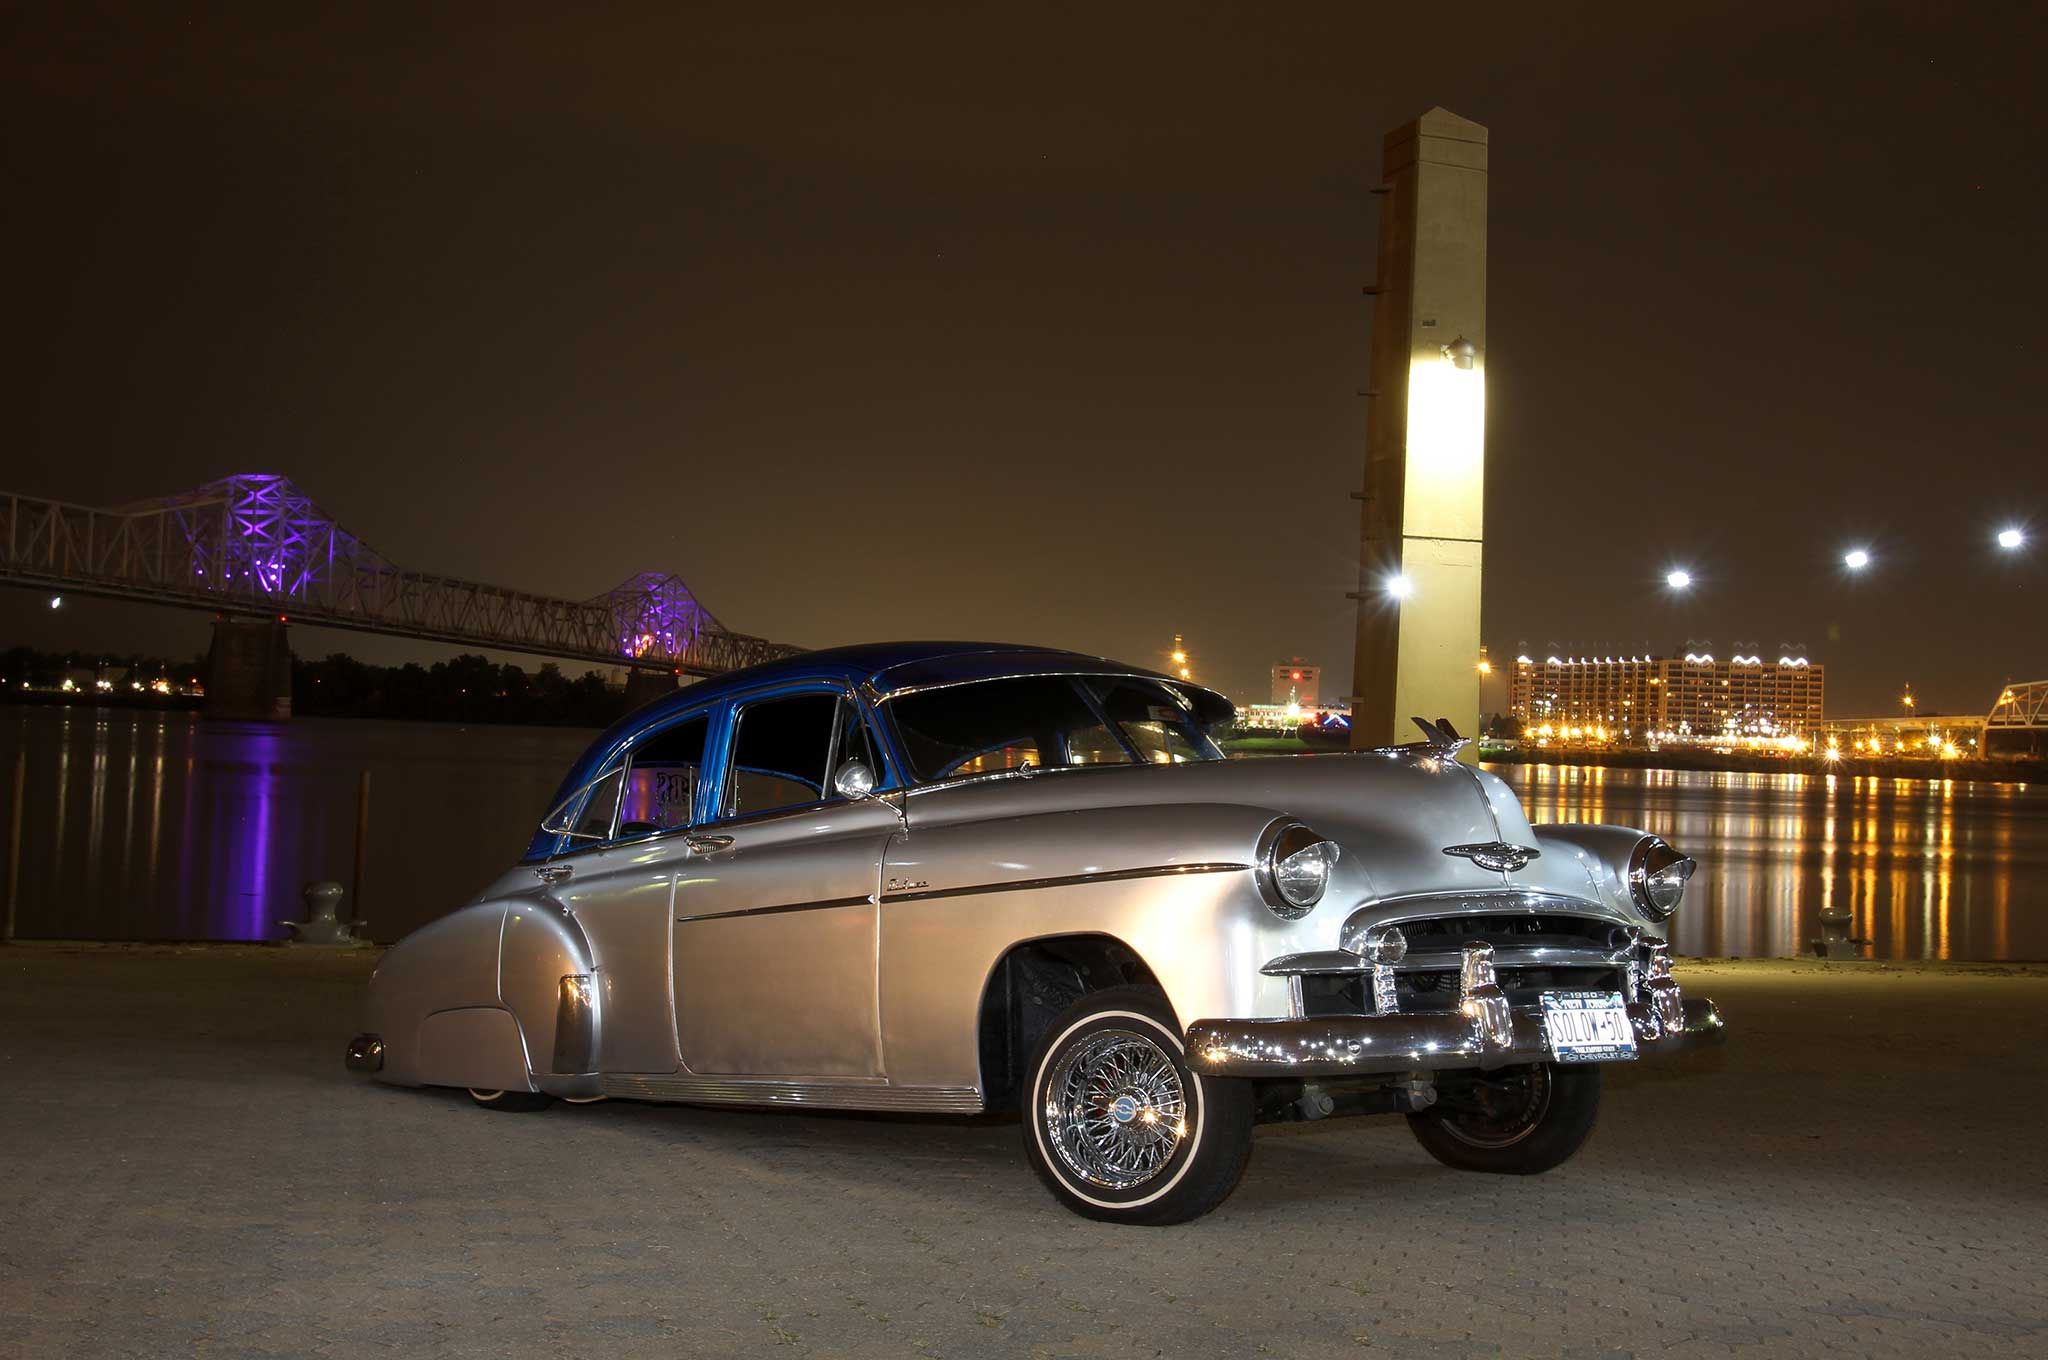 1950 Chevrolet Styleline - Keeping it in the Family - Lowrider